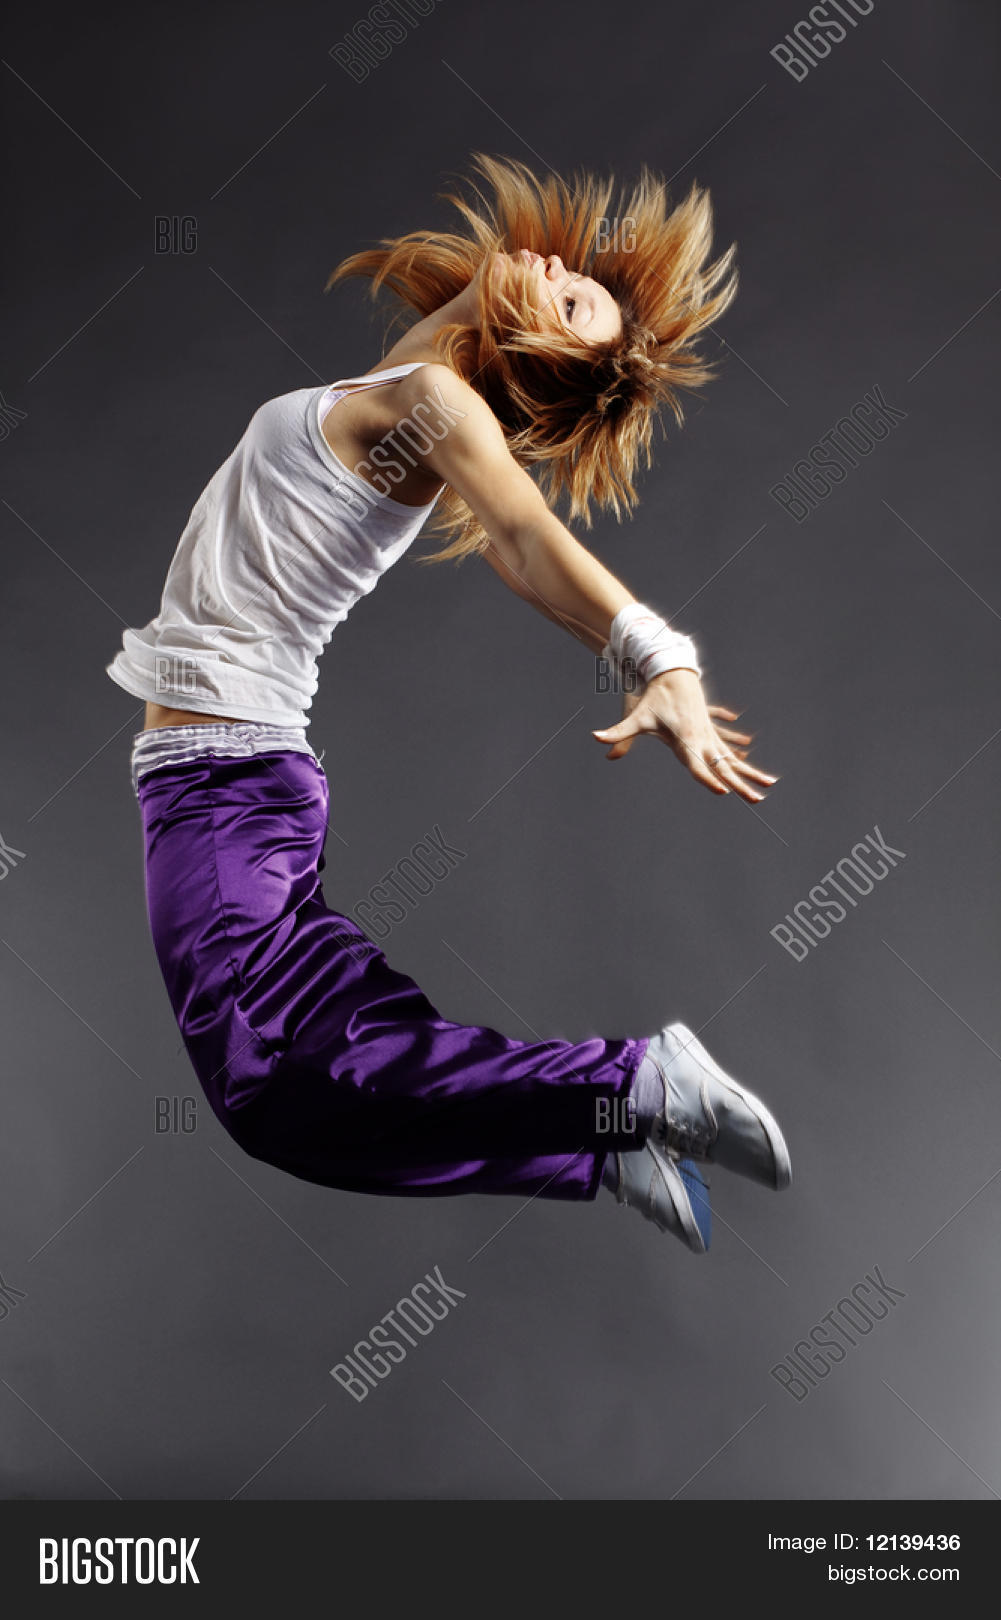 Teenage Girl Dancing Image Photo Free Trial Bigstock